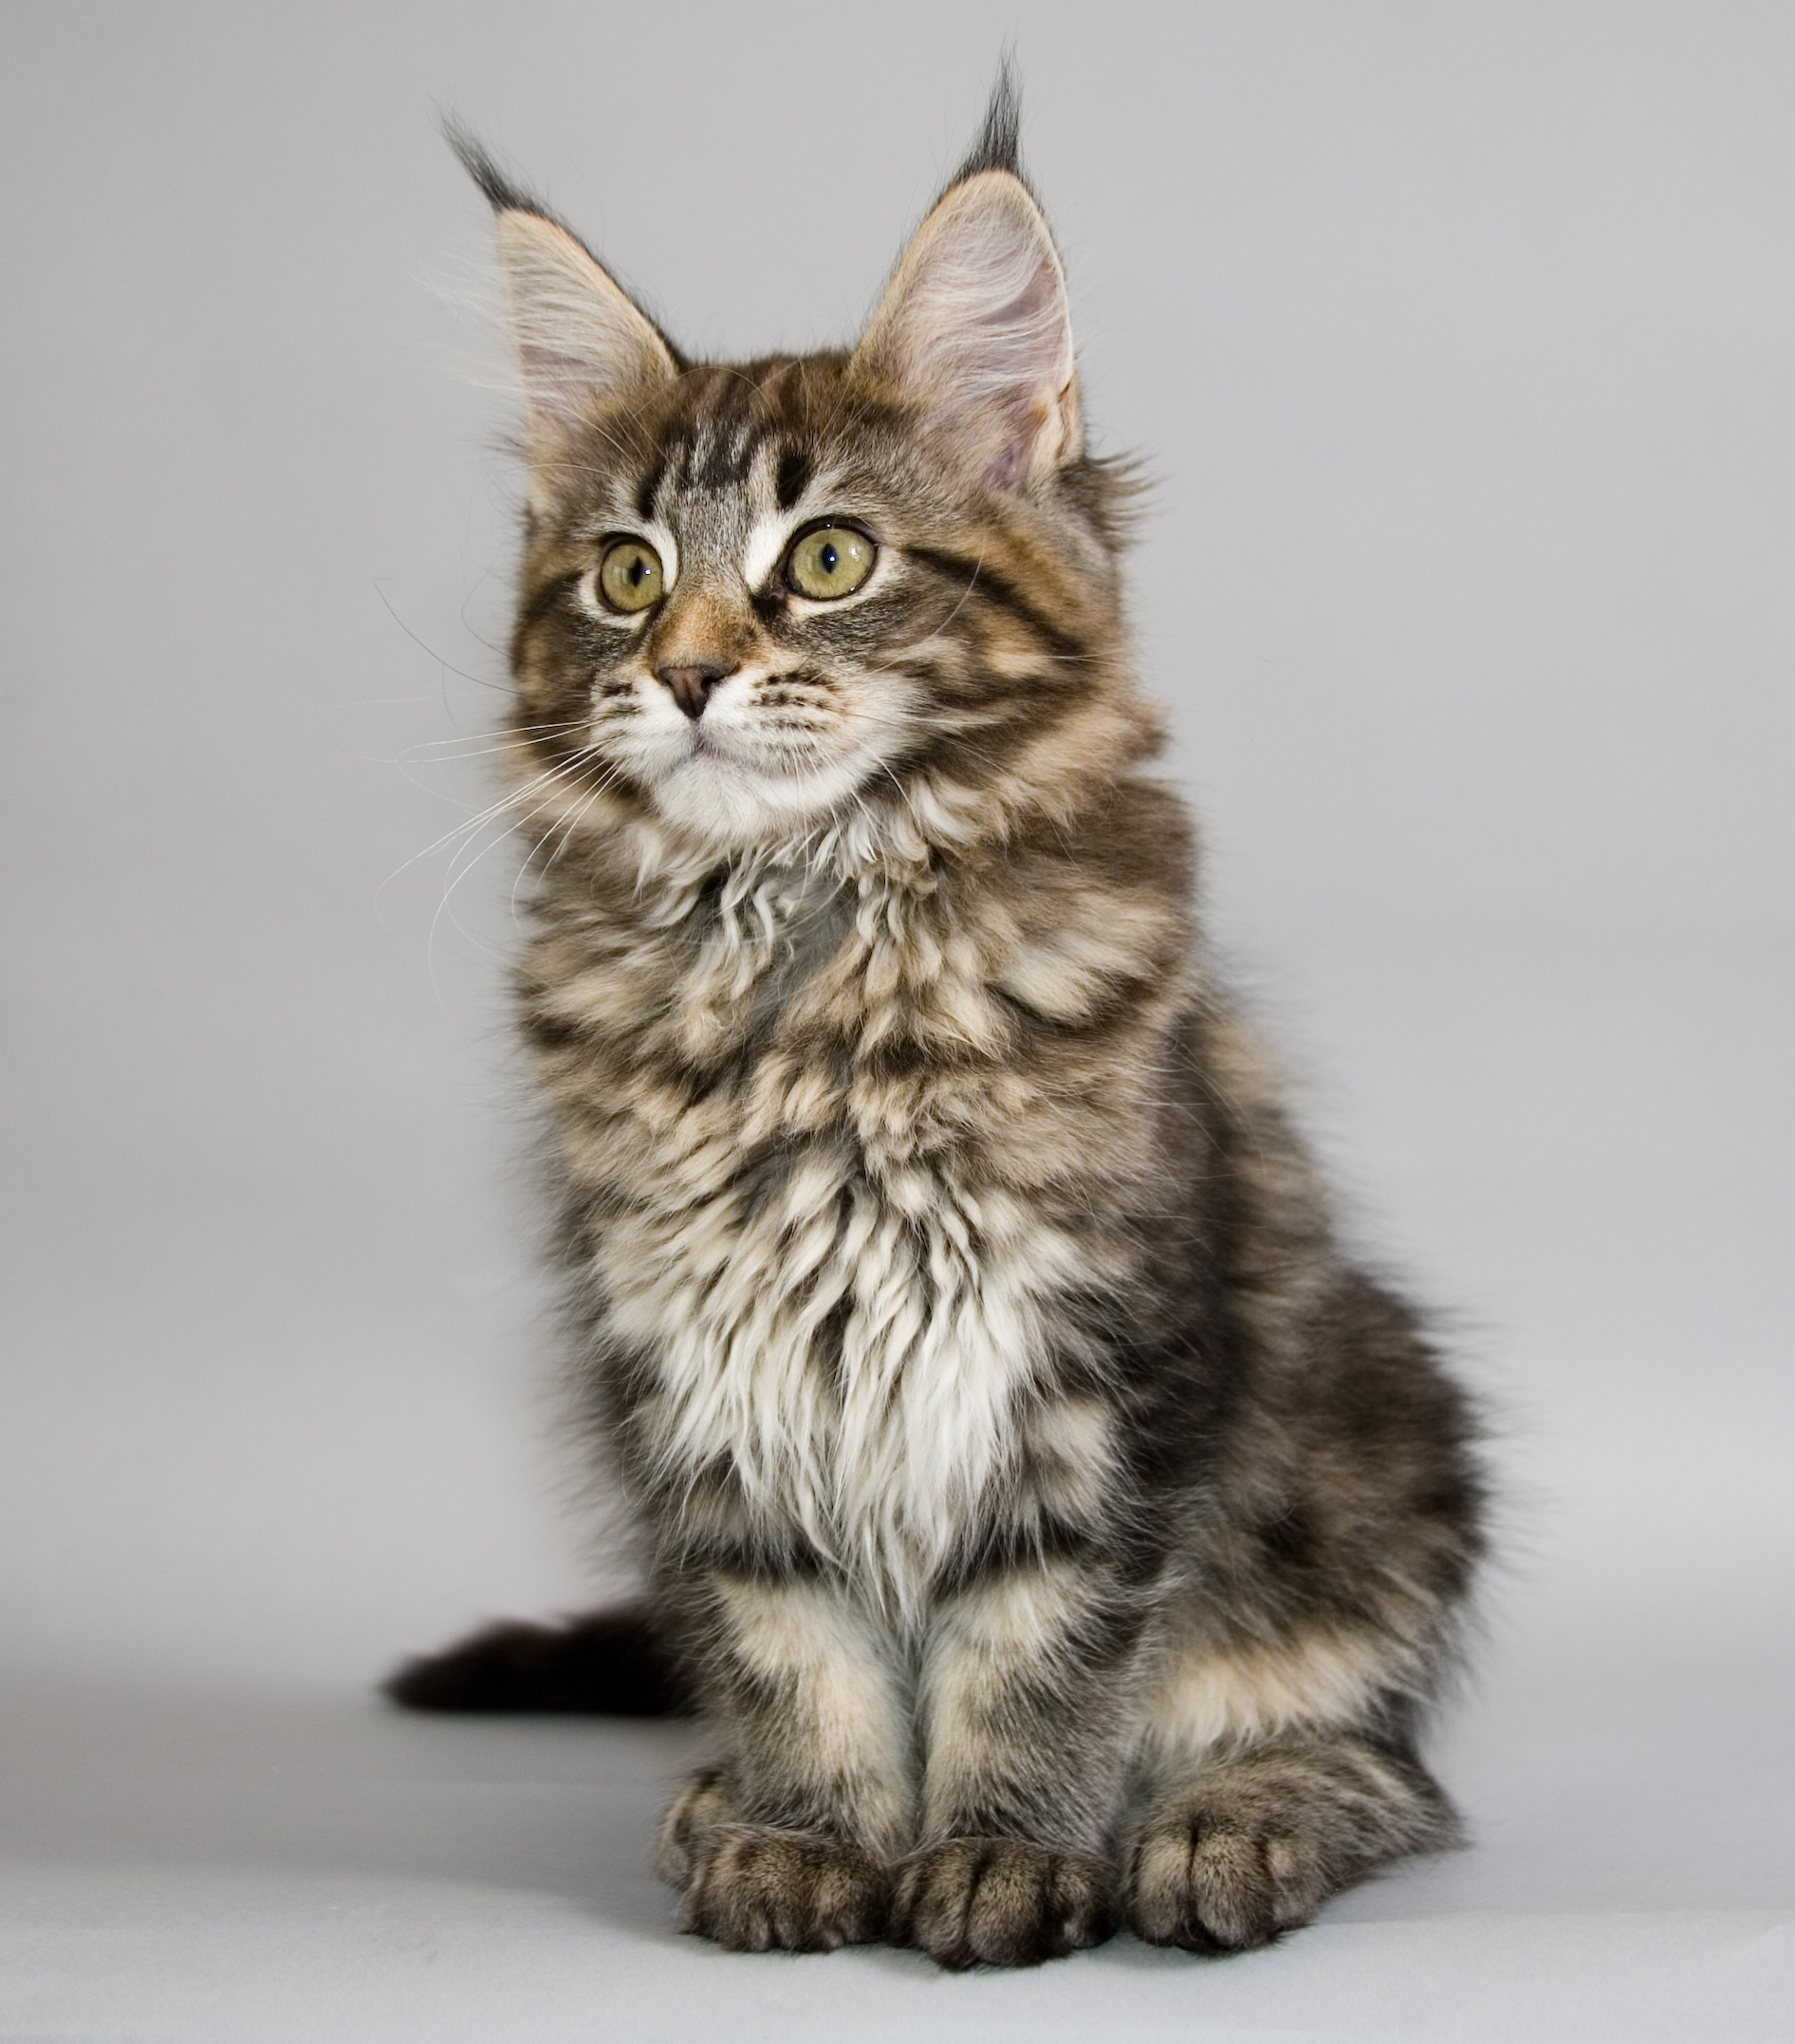 Maine Coon kitten portrait wallpaper